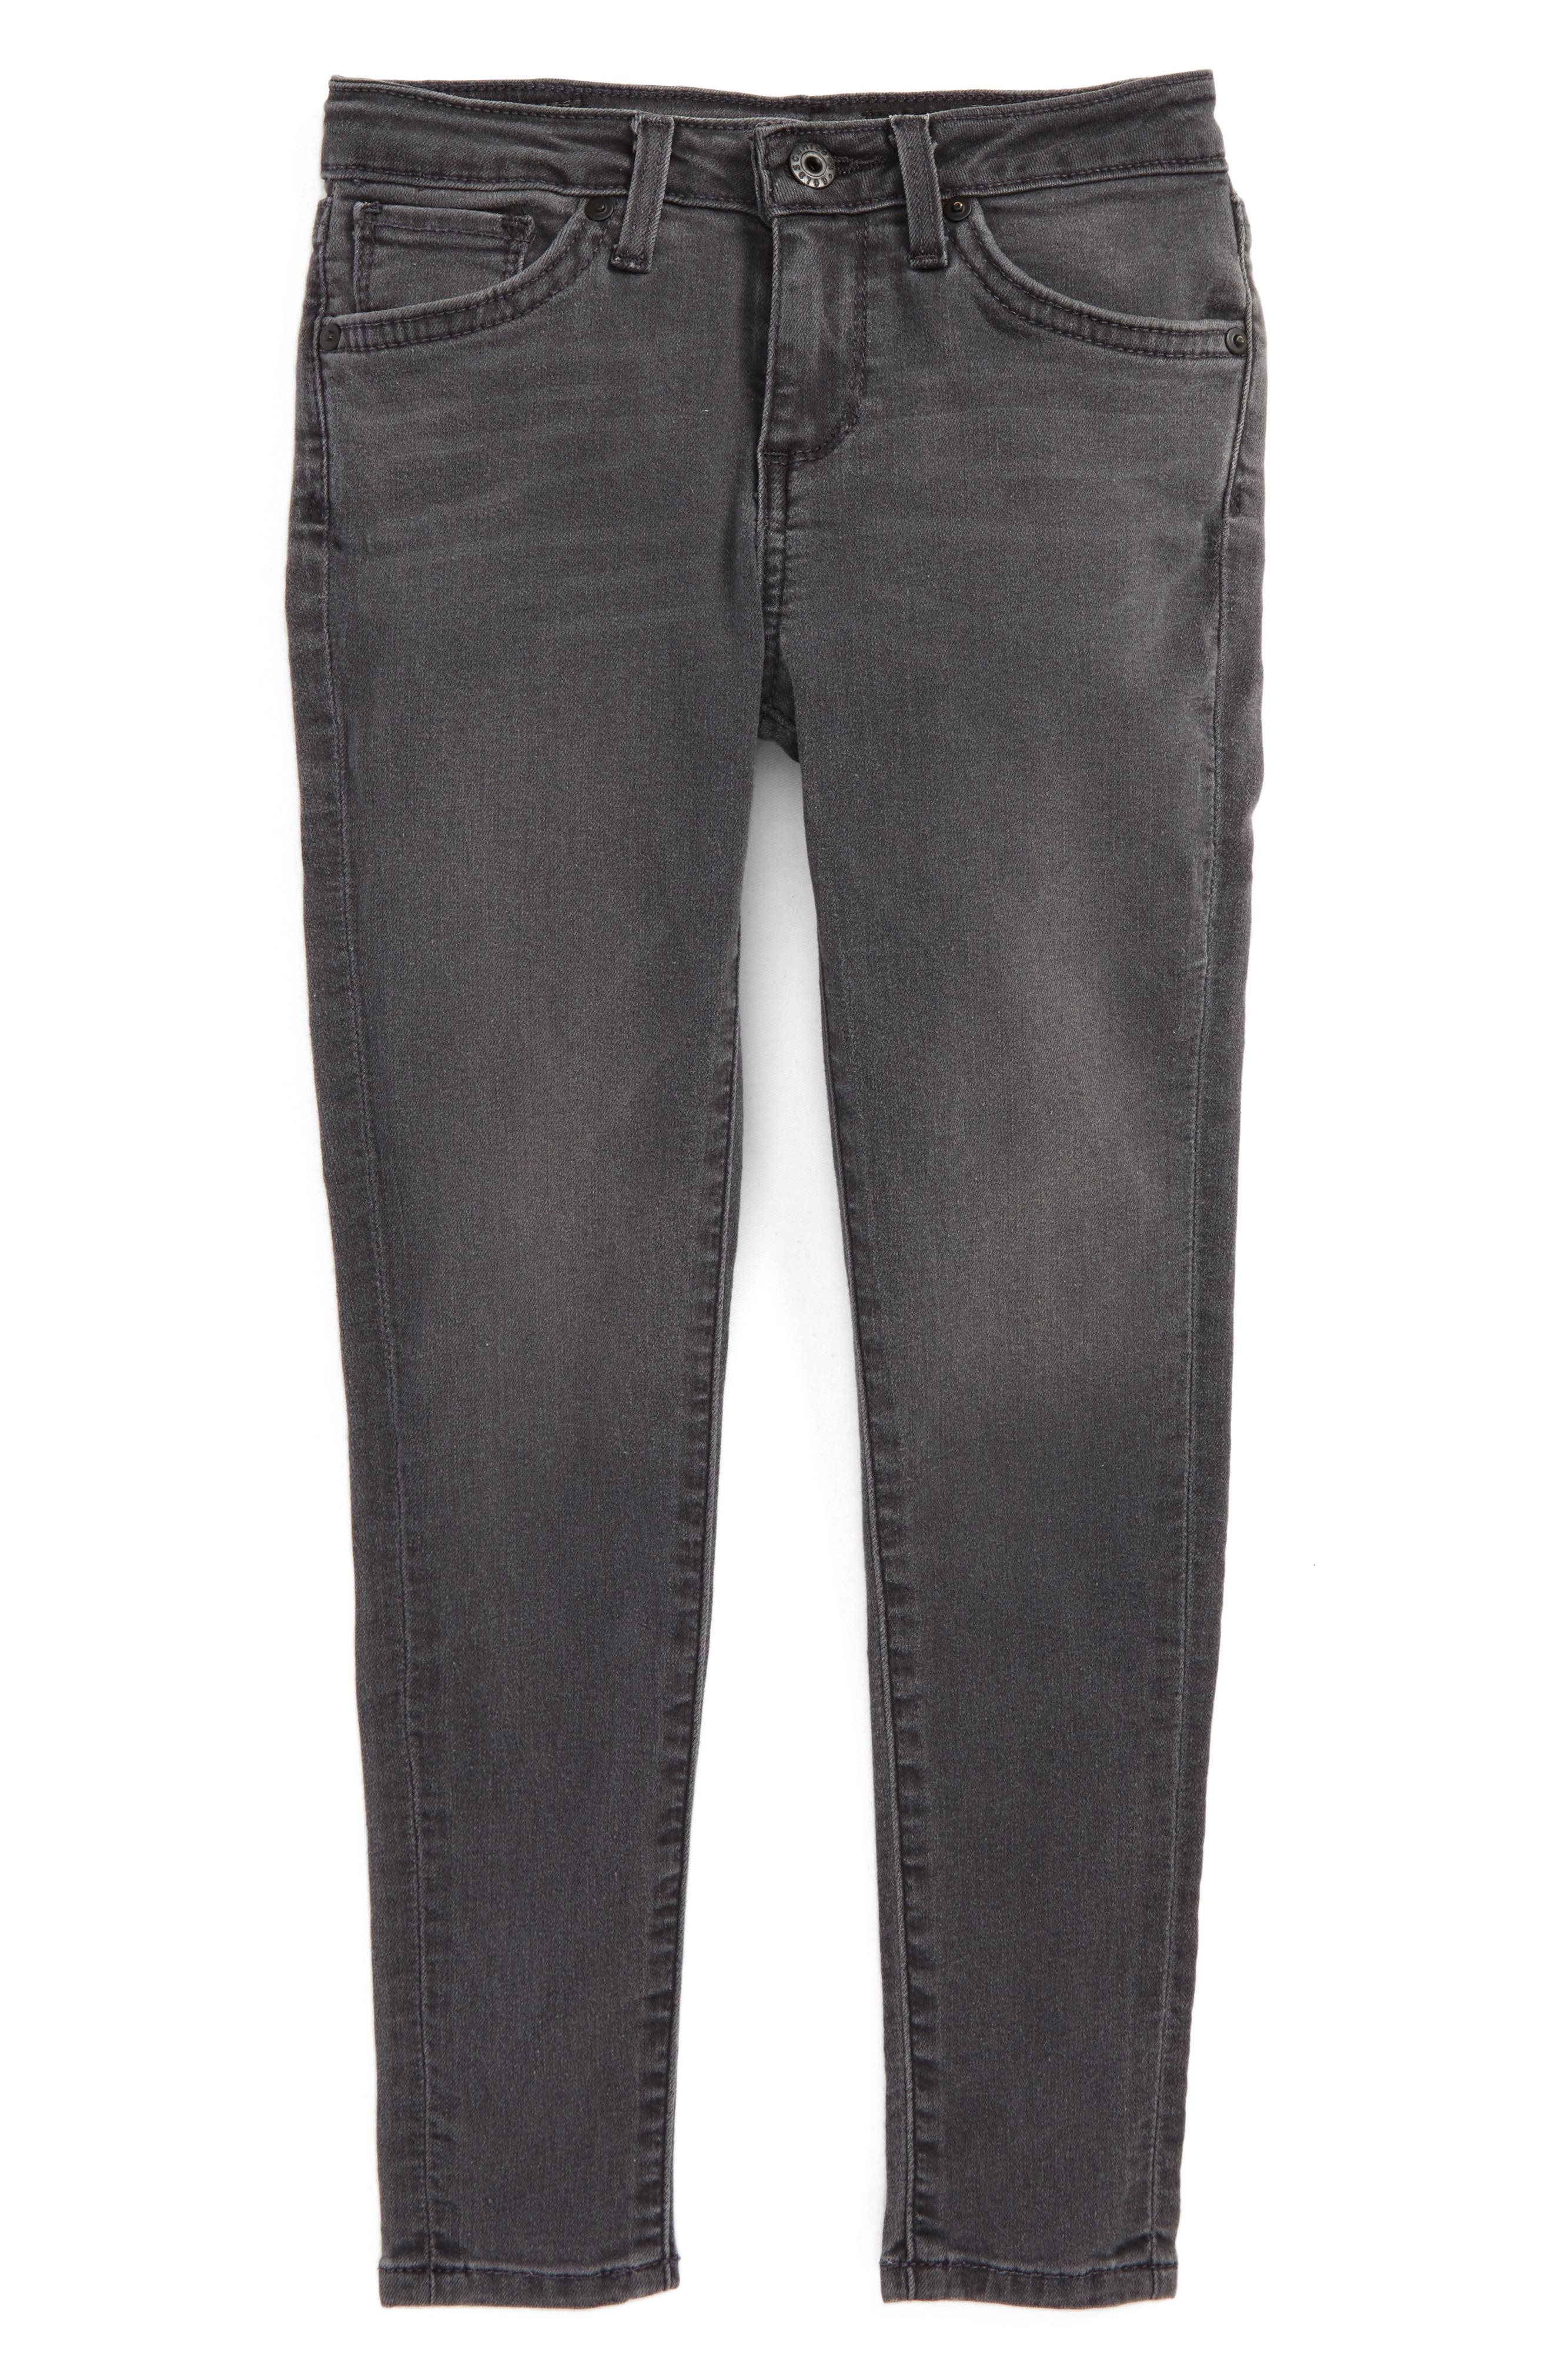 Twiggy Skinny Ankle Jeans,                         Main,                         color, Fulton Wash